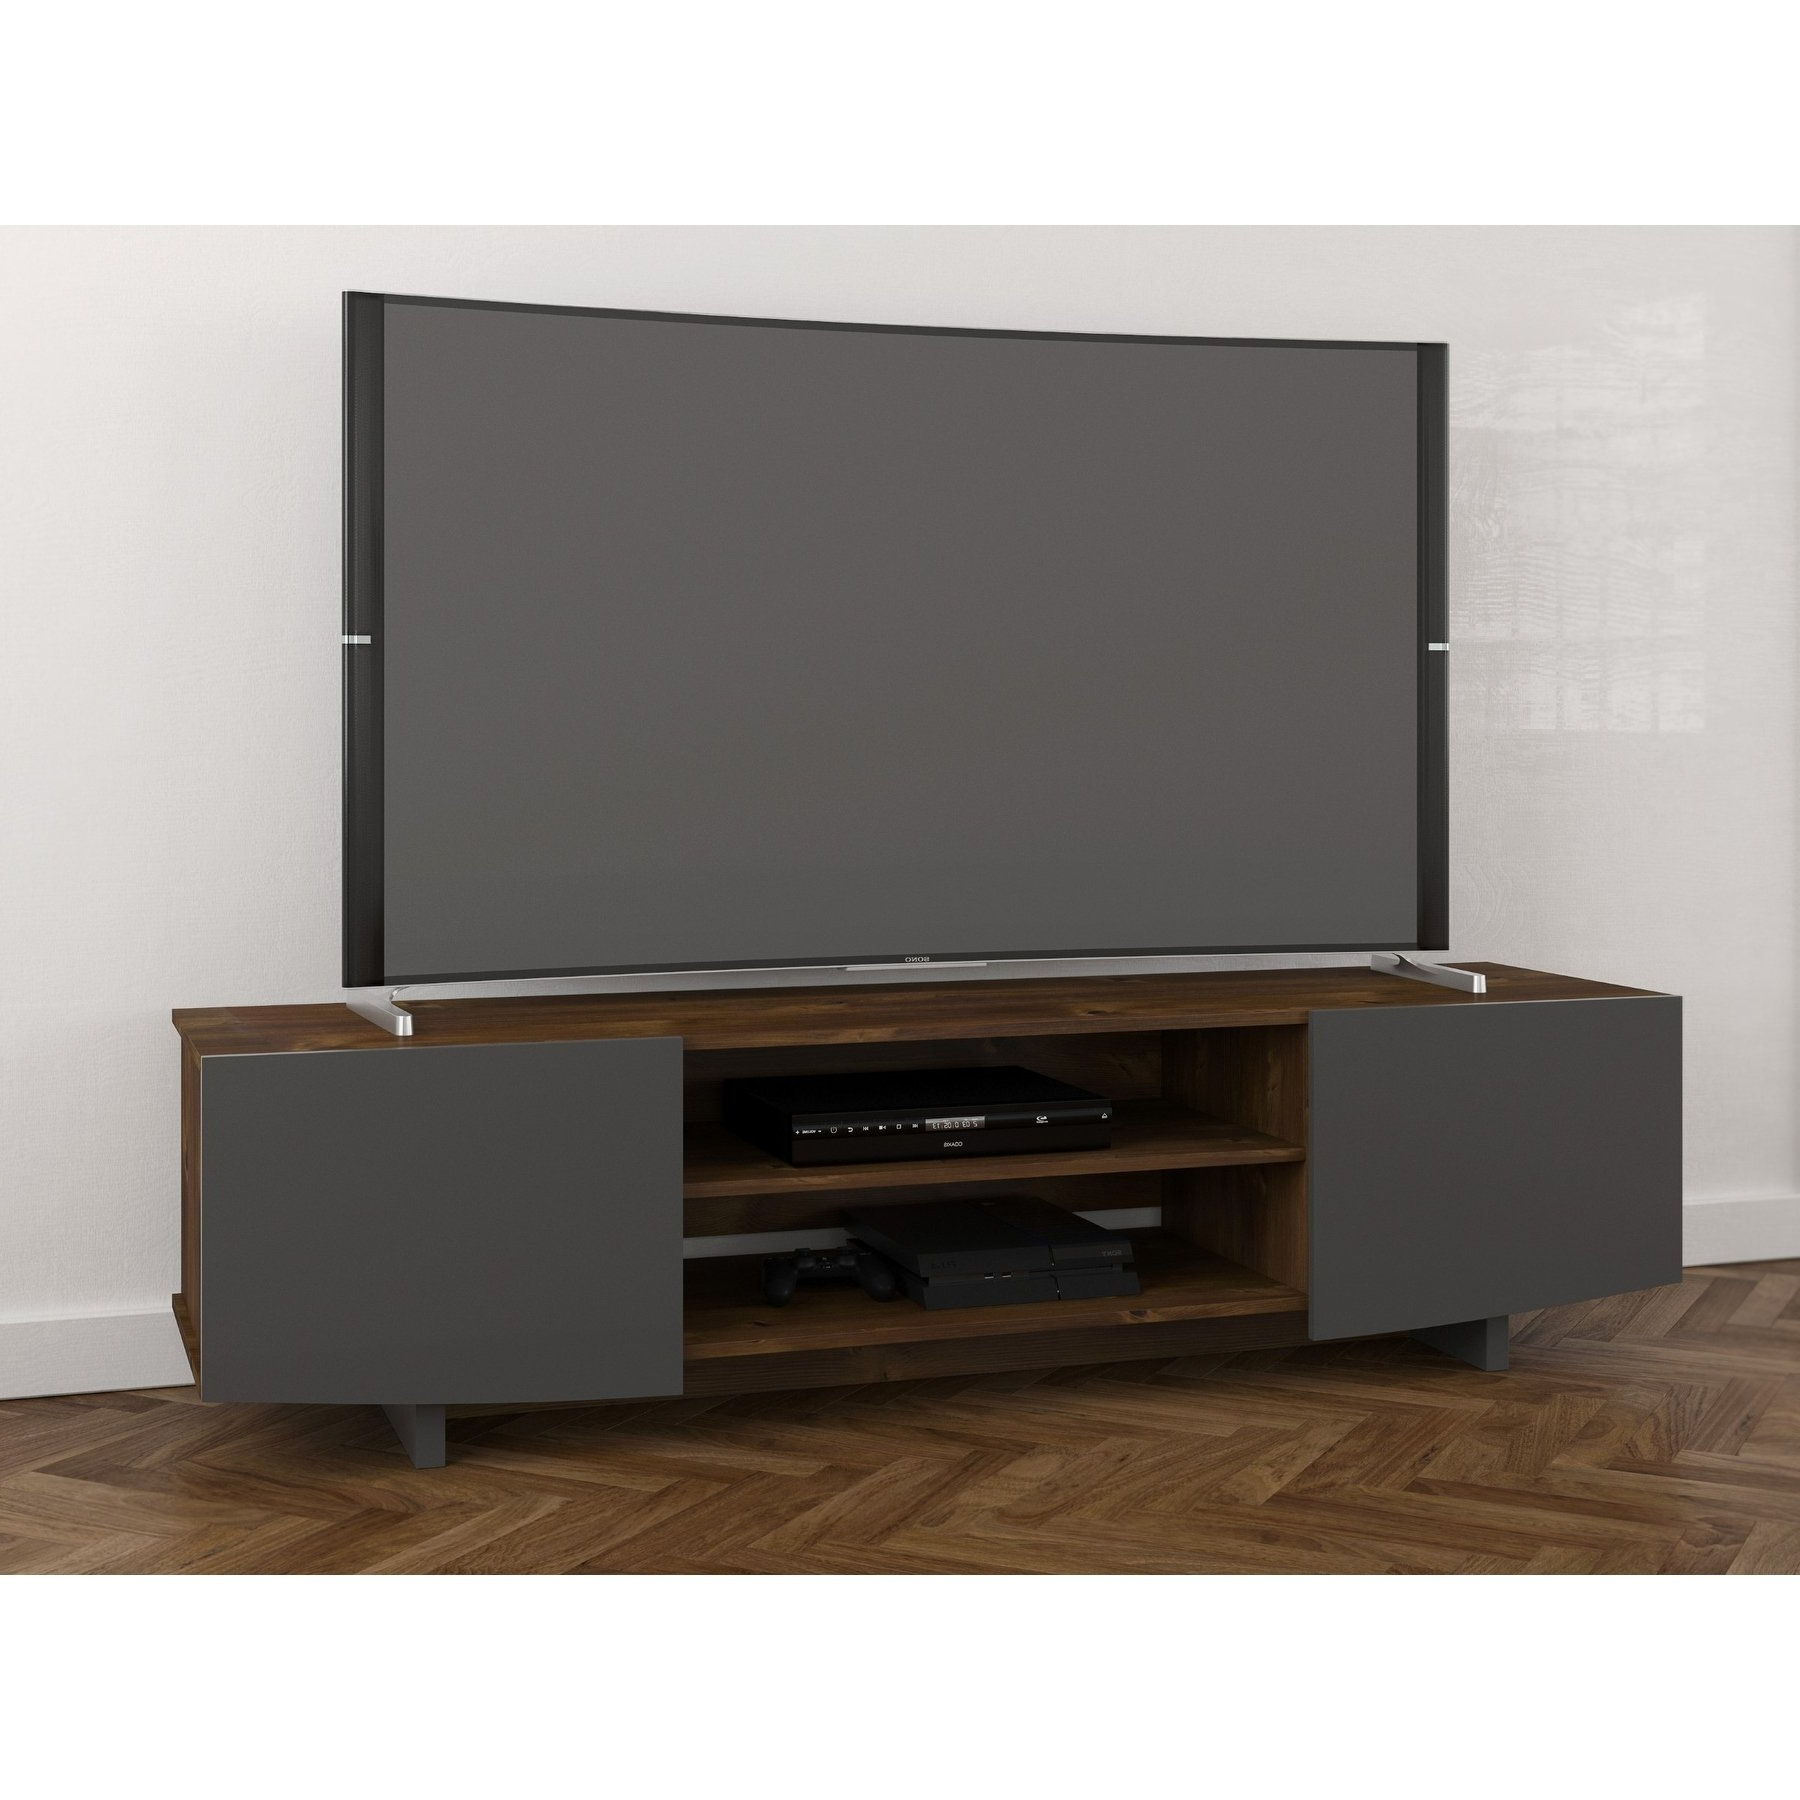 Nexera Helix Tv Stand, Truffle And Charcoal Grey (Gallery 12 of 20)